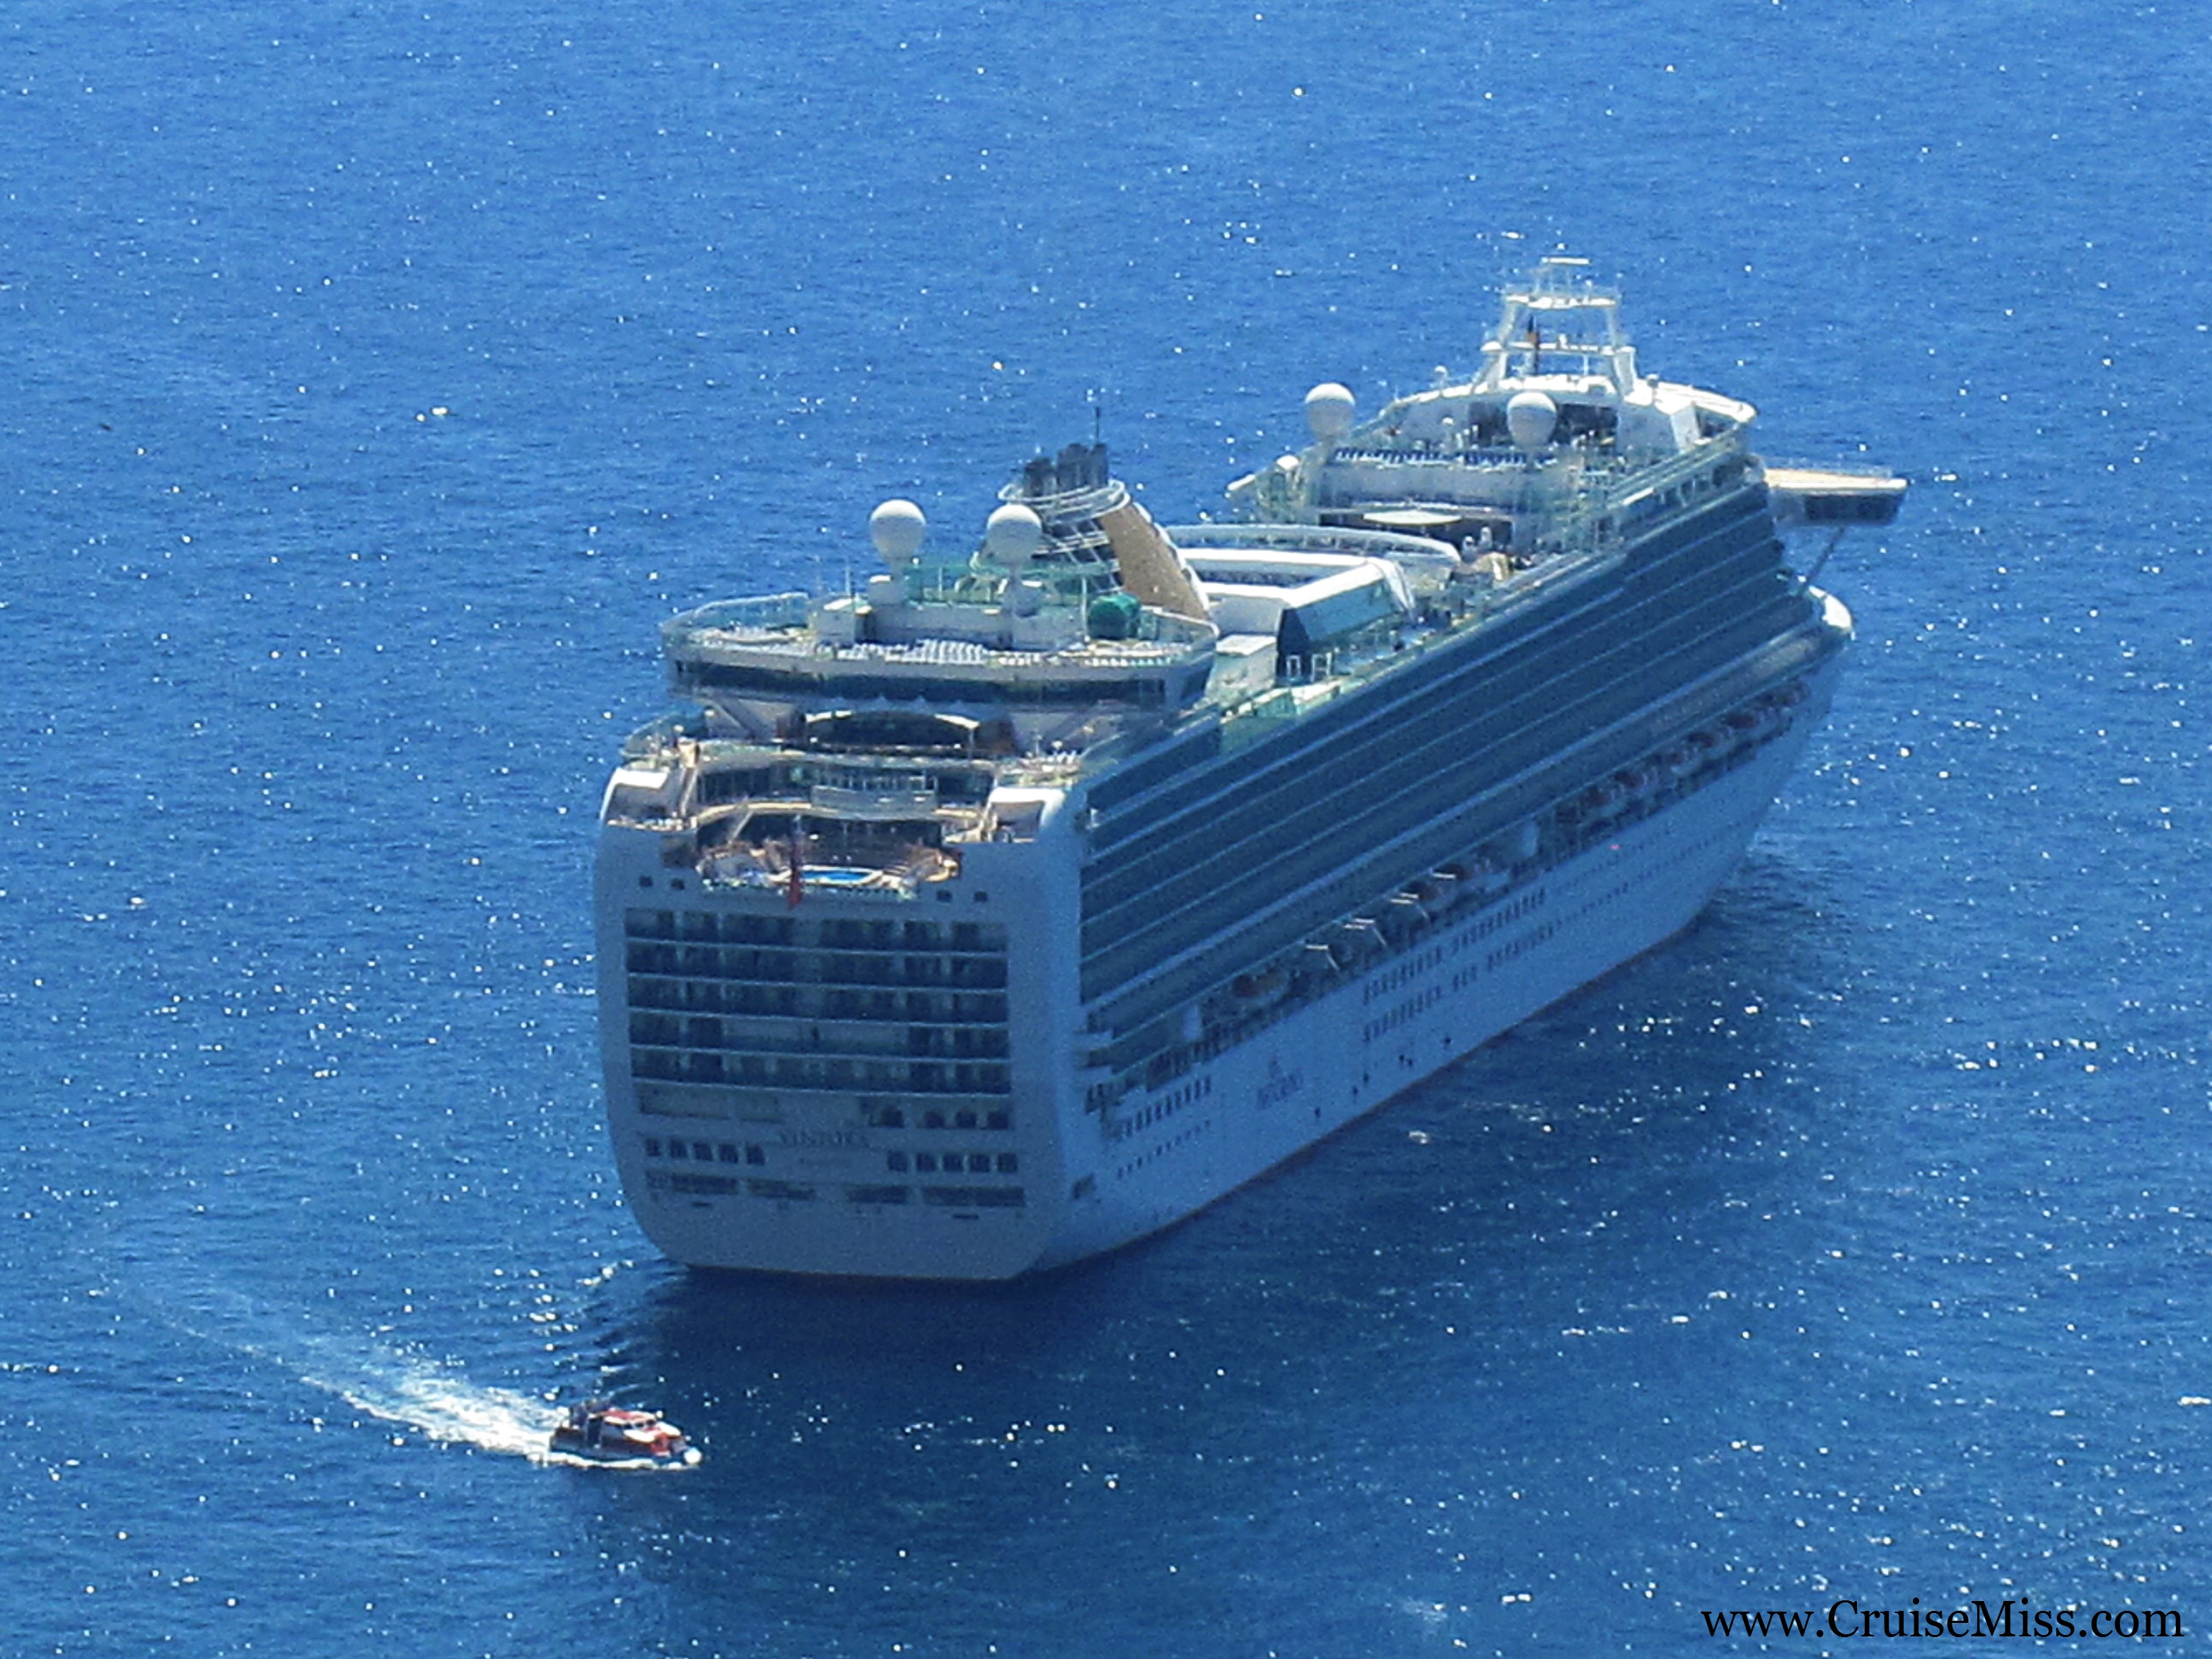 My Favourite Cruise Ship Photographs Part CruiseMiss Cruise Blog - Cruise ships in monaco today